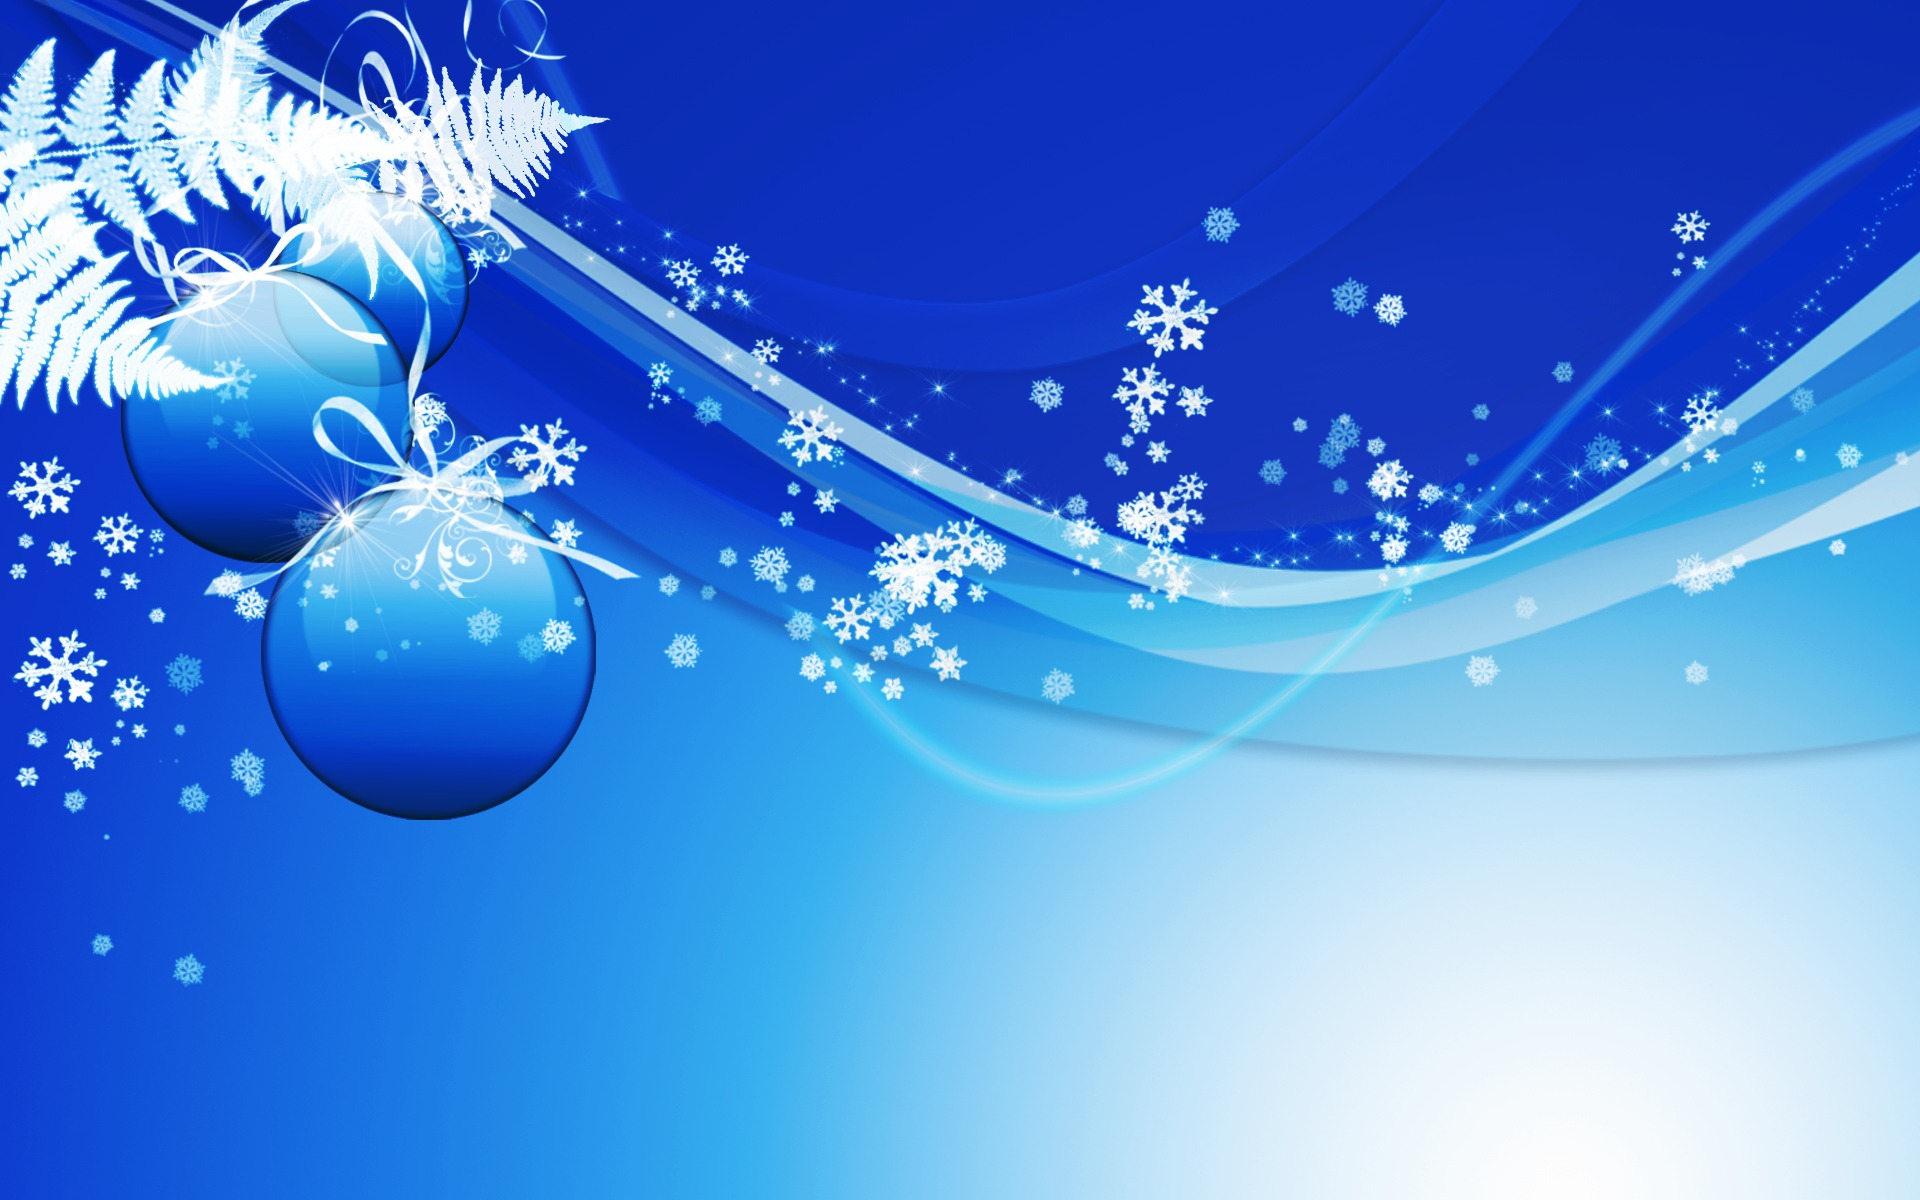 Google Christmas Images Pictures Wallpapers